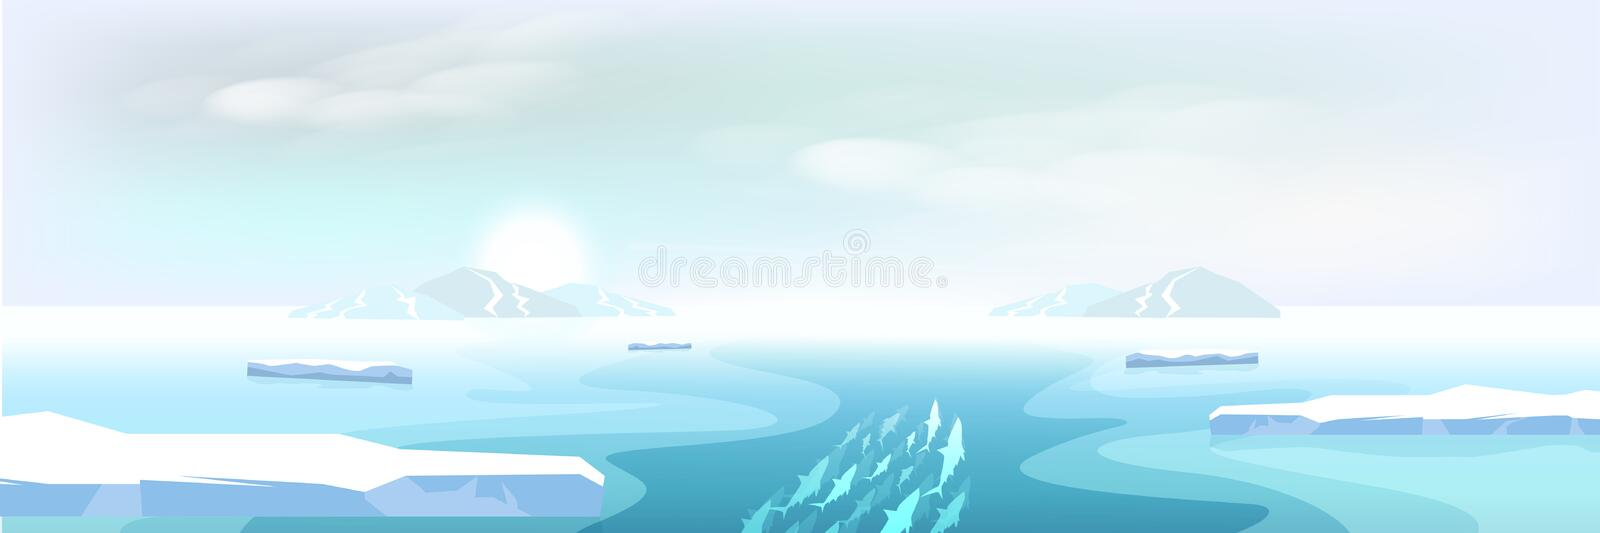 Arctic landscape ice melting and ice mountains, winter to summer stock illustration